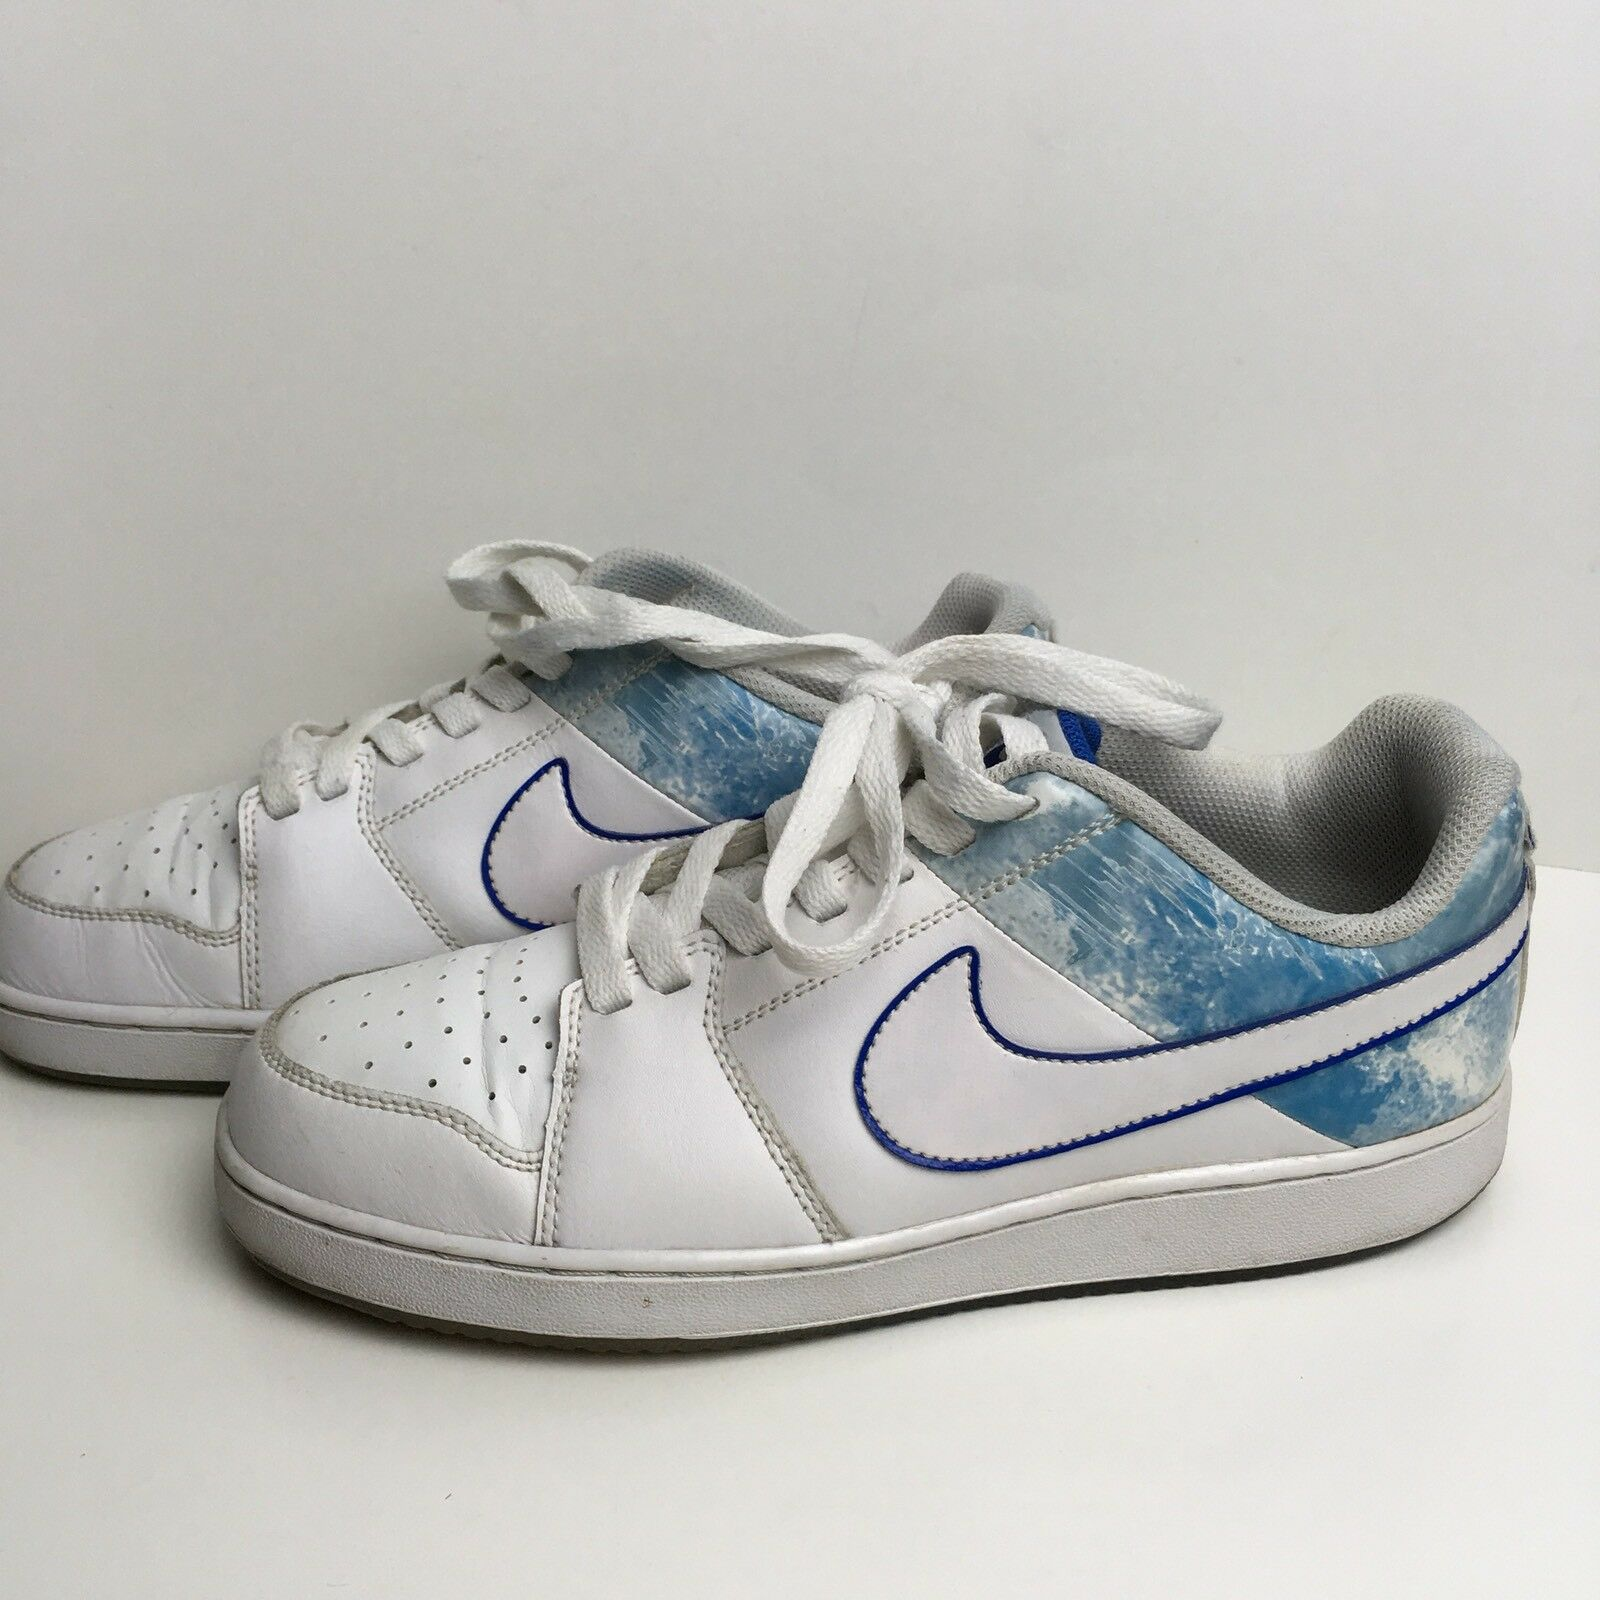 Nike Men's Backboard II Casual White and Varsity Royal Running Shoes Size 7